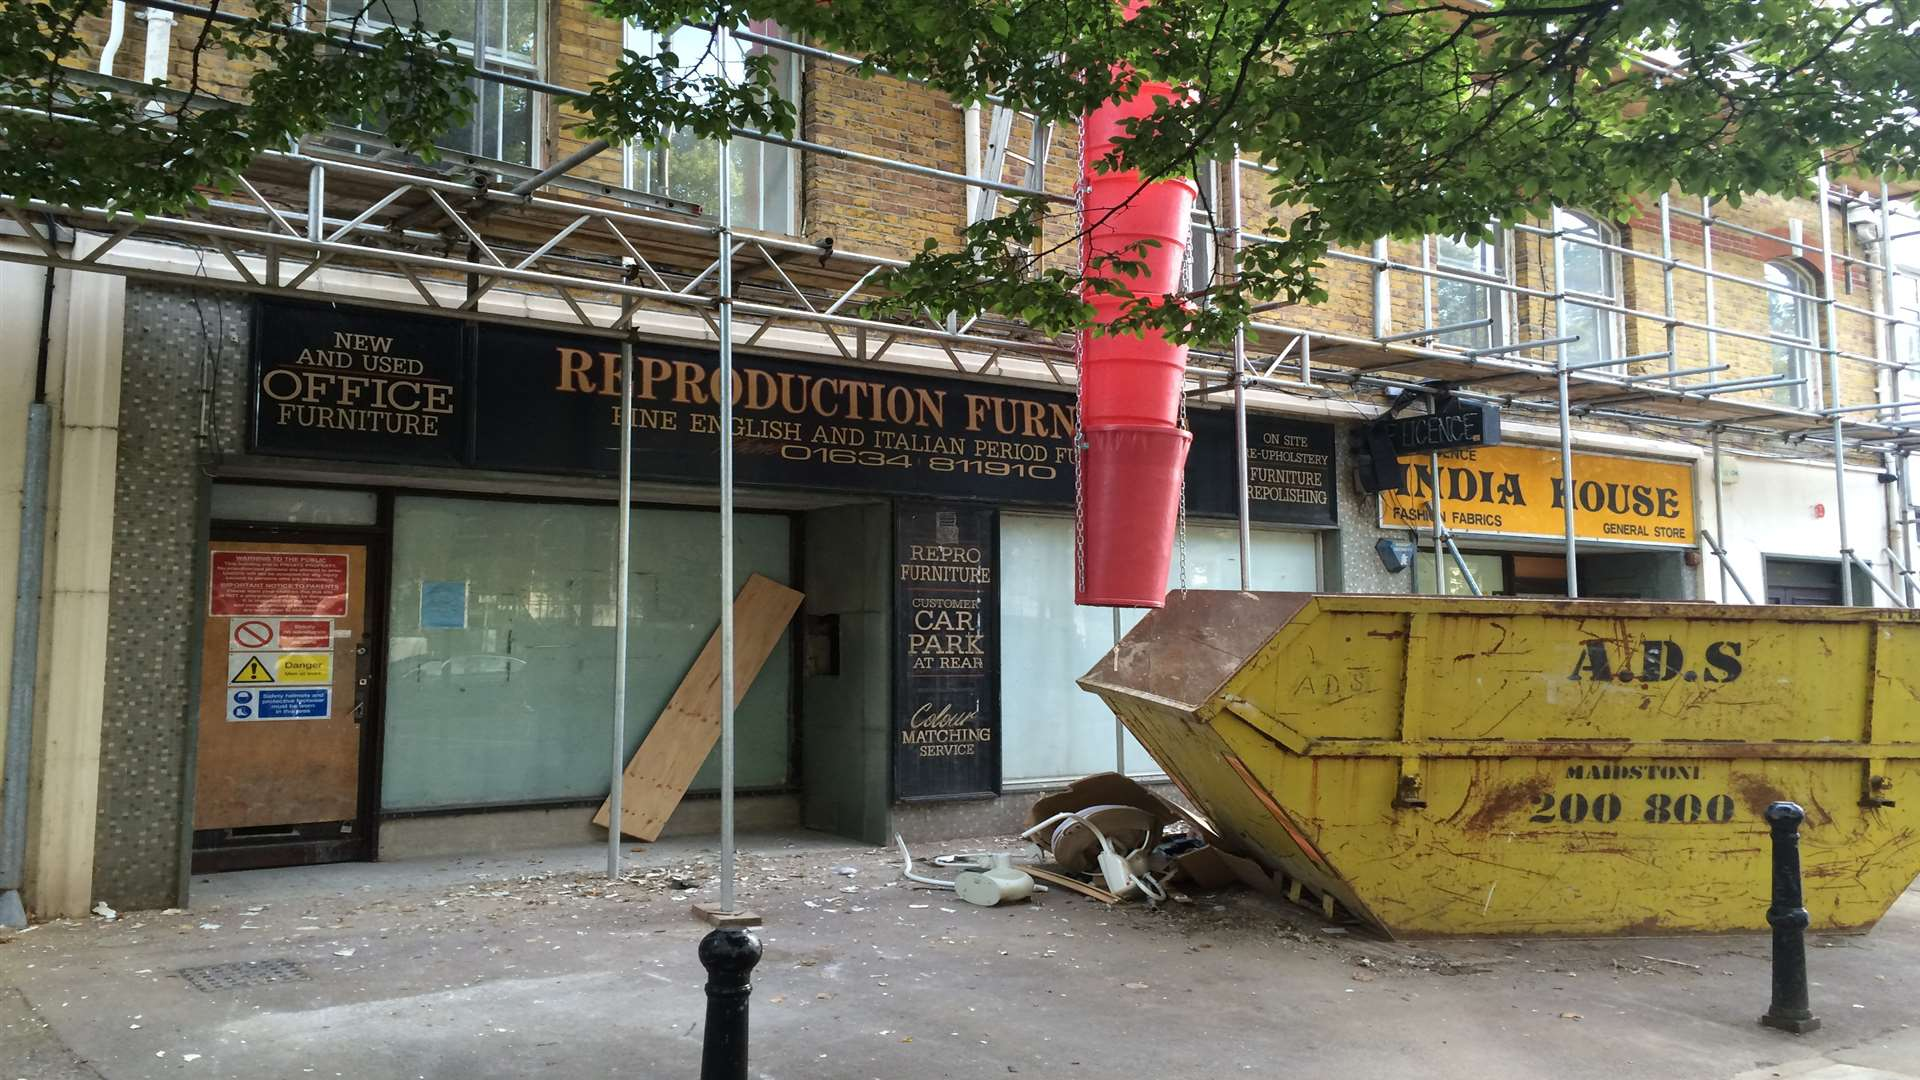 Owners have plans to open a restaurant bar at 17 New Road, Chatham - which was formerly a furniture shop